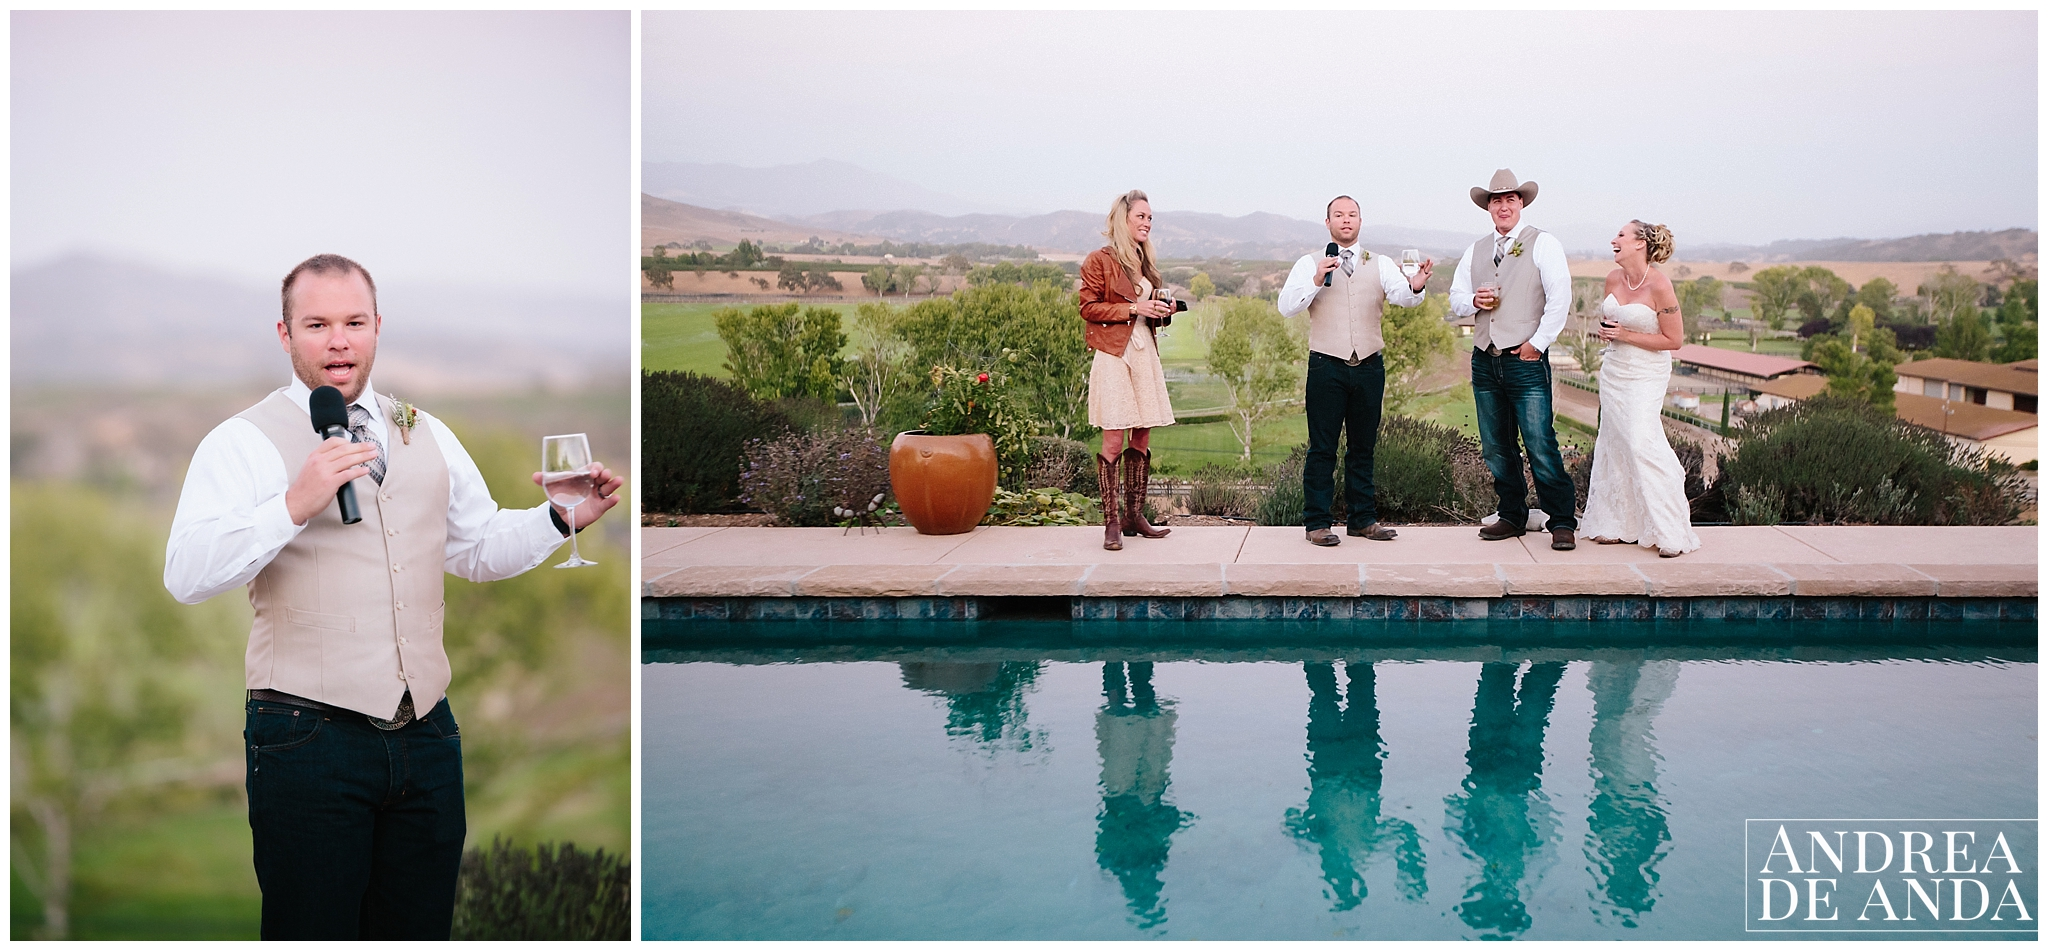 Santa Ynez Valley back yard wedding_Andrea de Anda Photography__0060.jpg